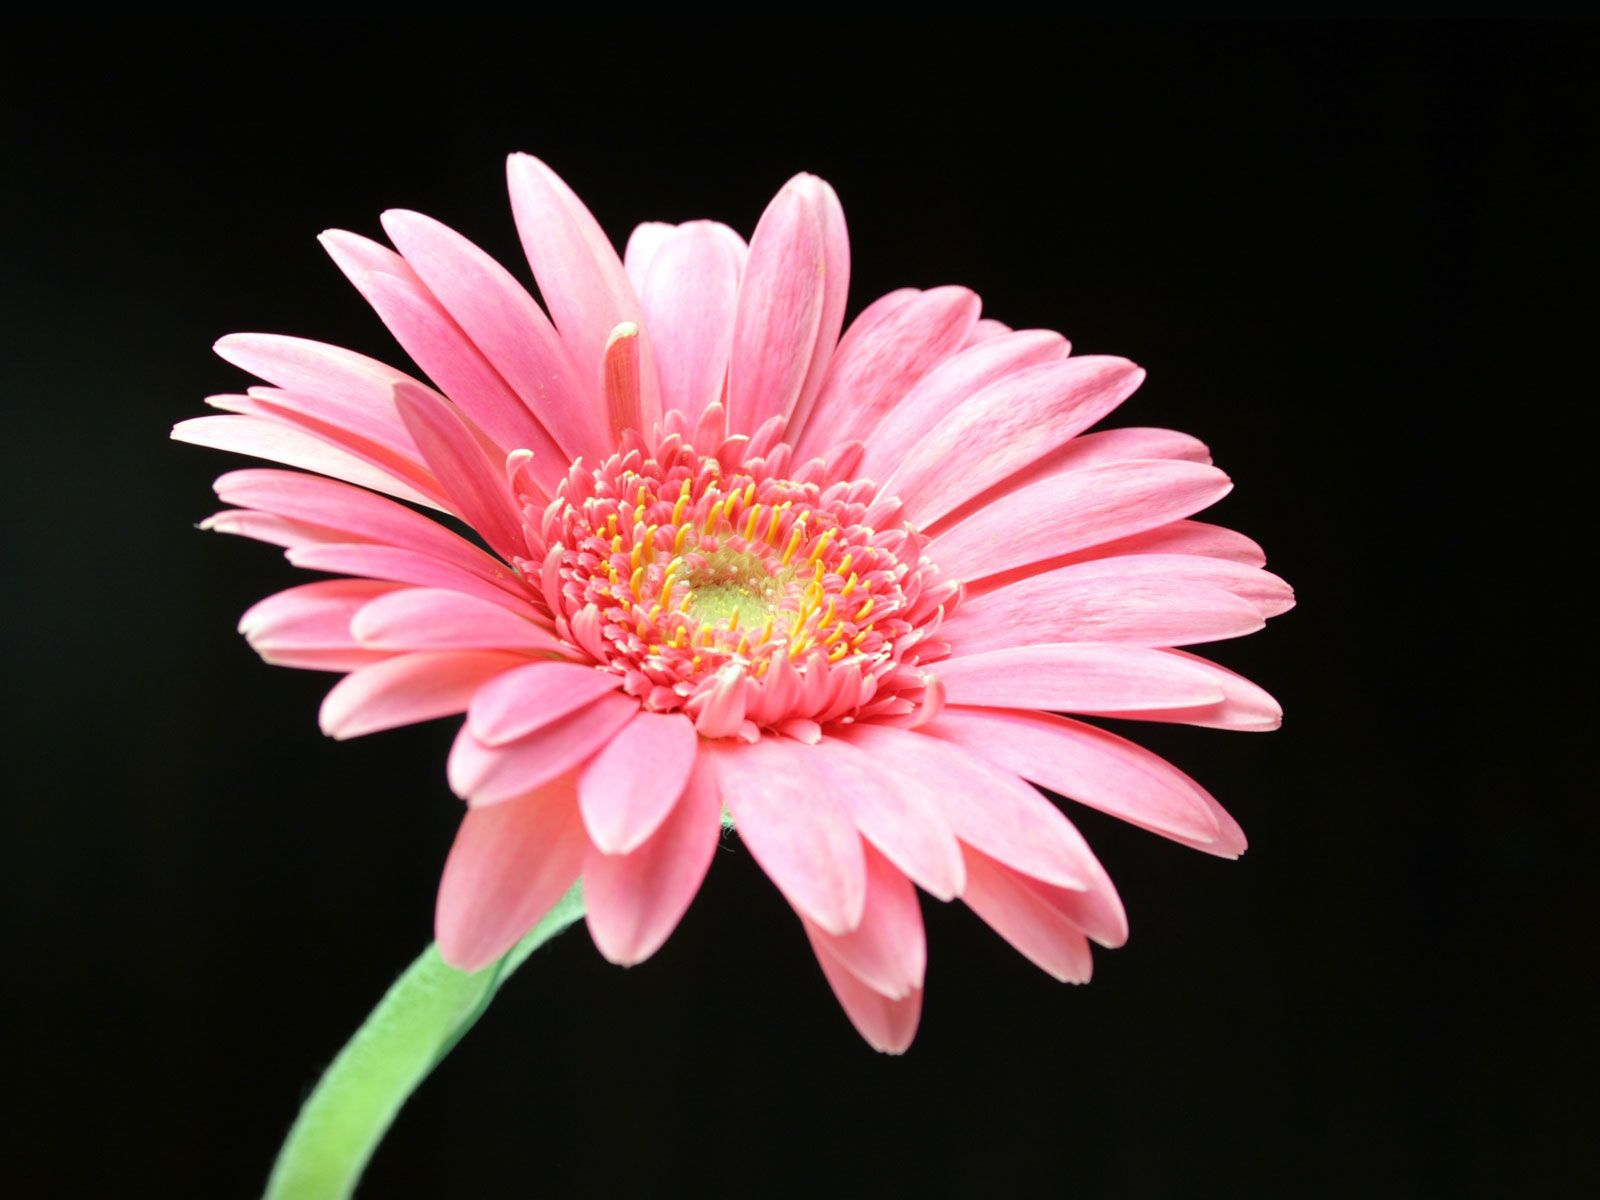 Pink Daisy Wallpapers Hd Wallpapers Pink Daisy Wallpaper Daisy Wallpaper Pink Daisy